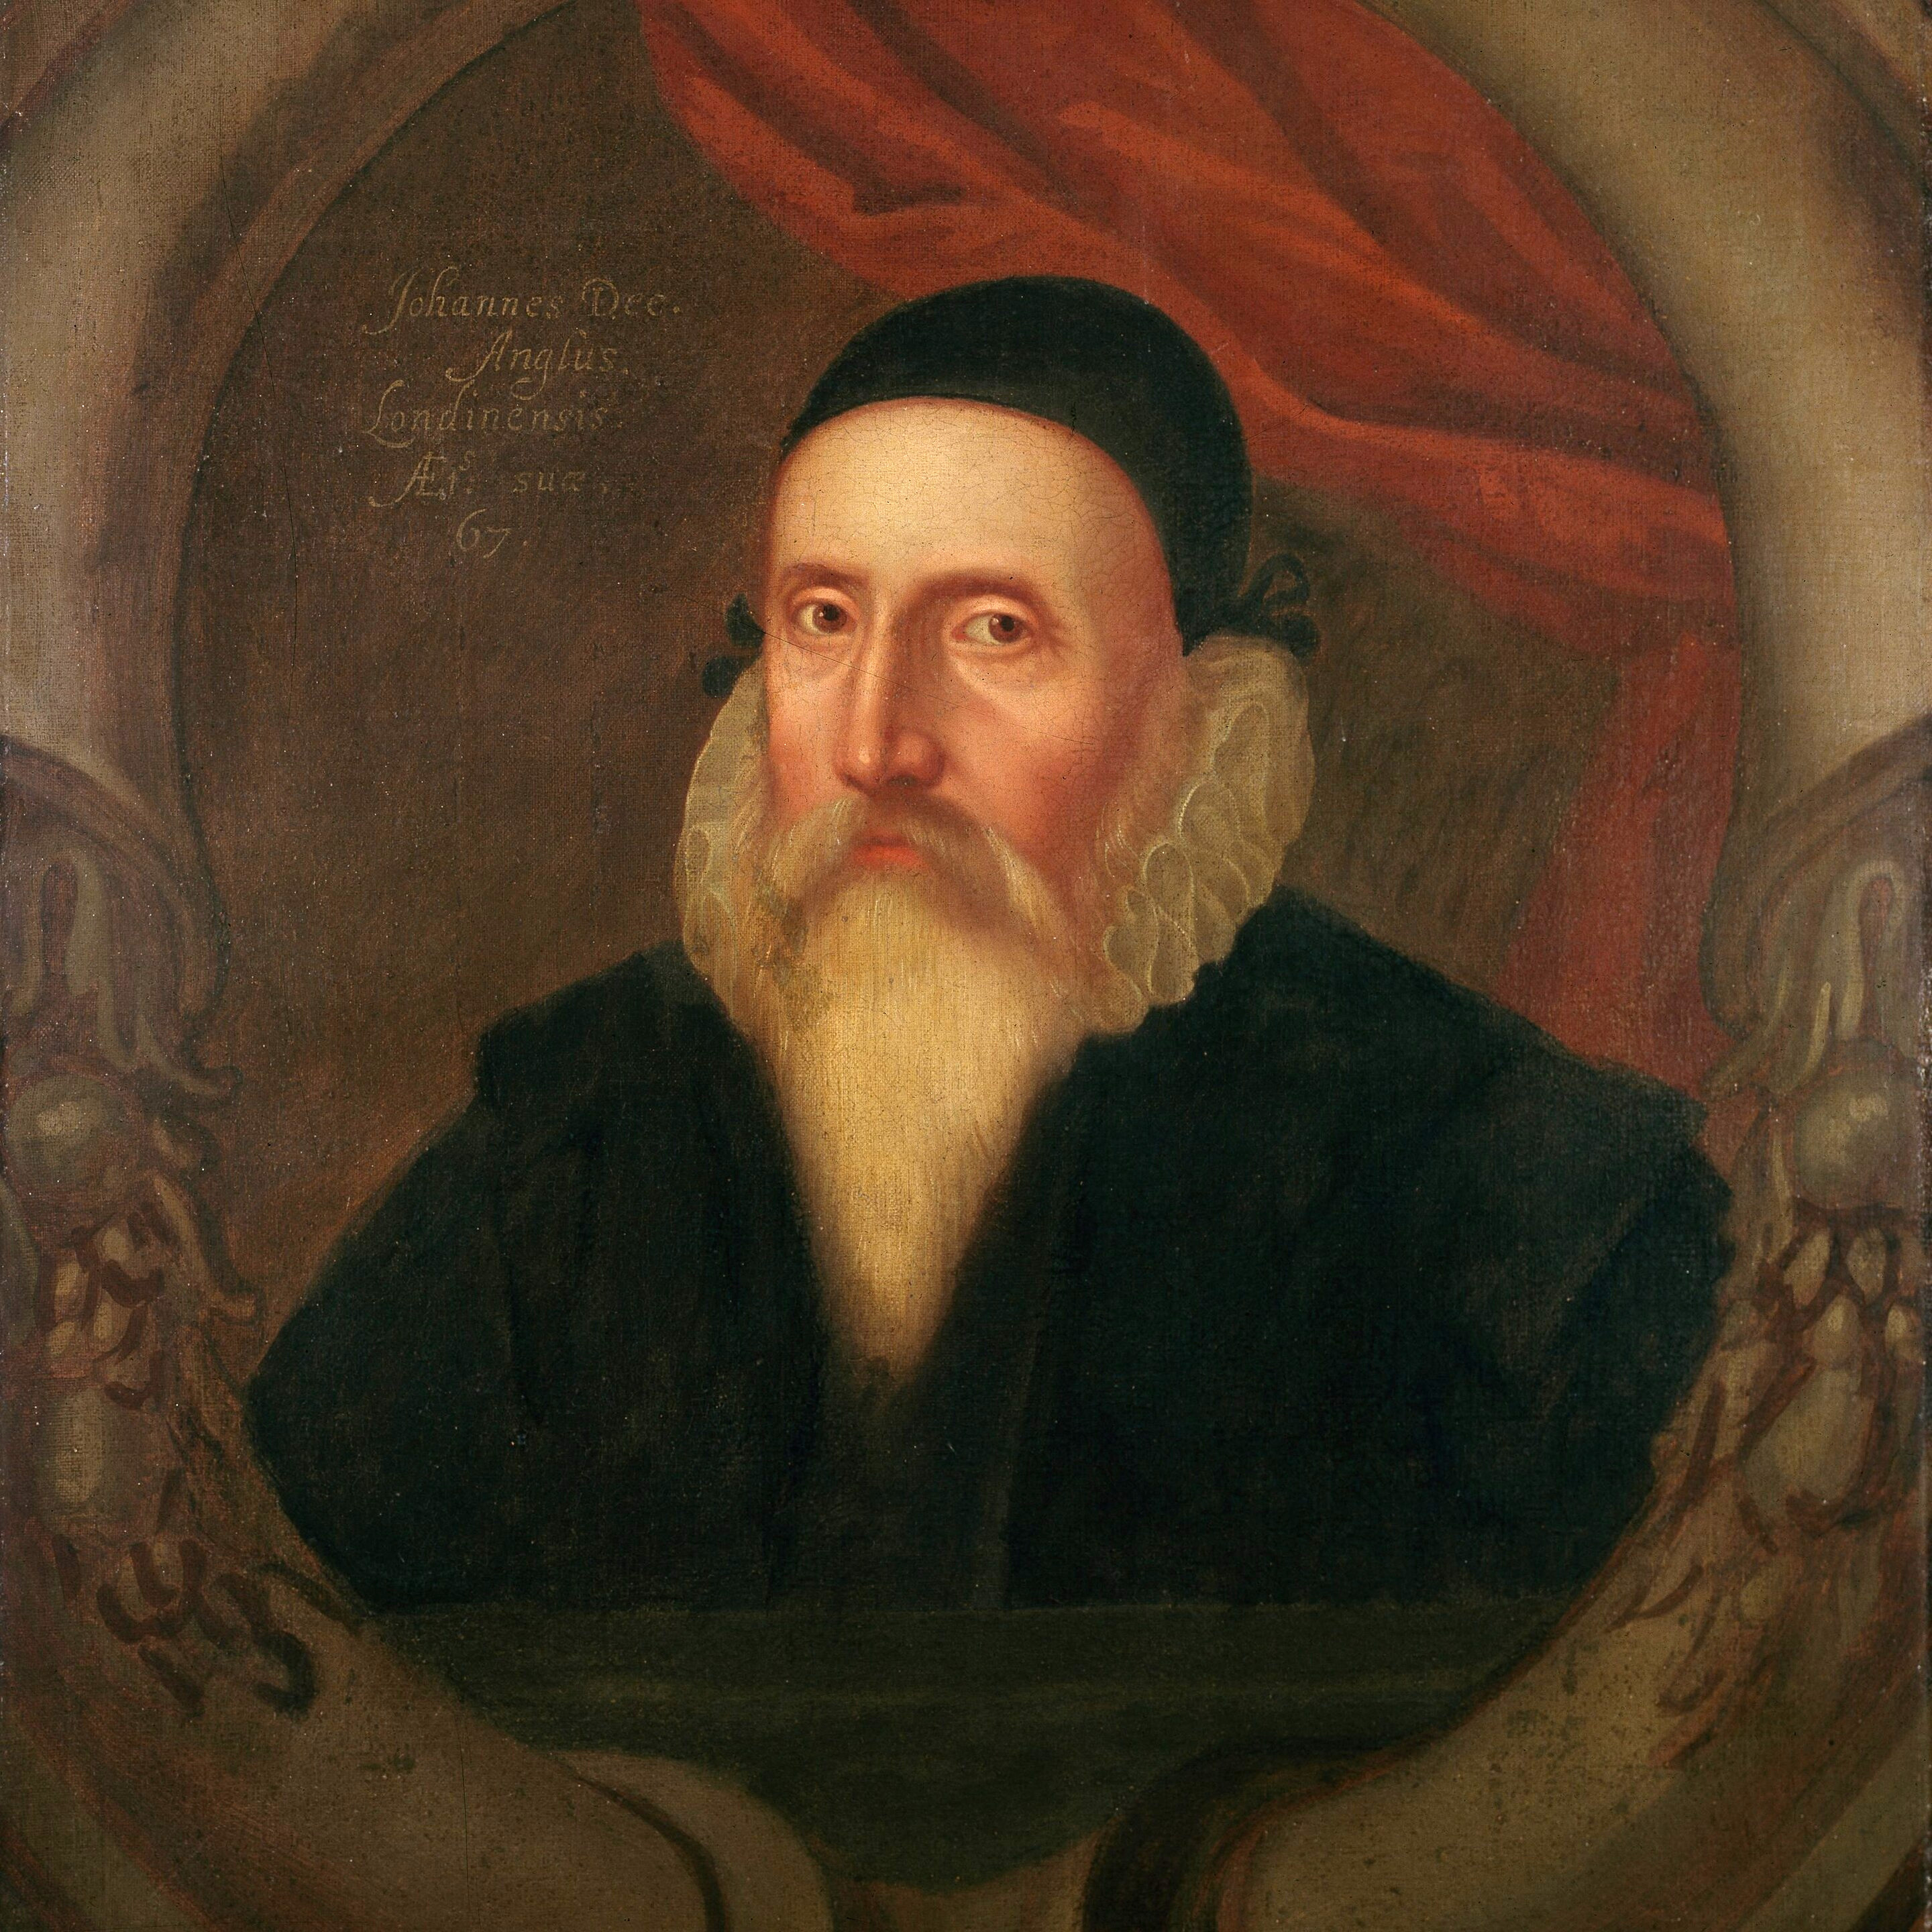 https://upload.wikimedia.org/wikipedia/commons/4/40/John_Dee_Ashmolean.jpg